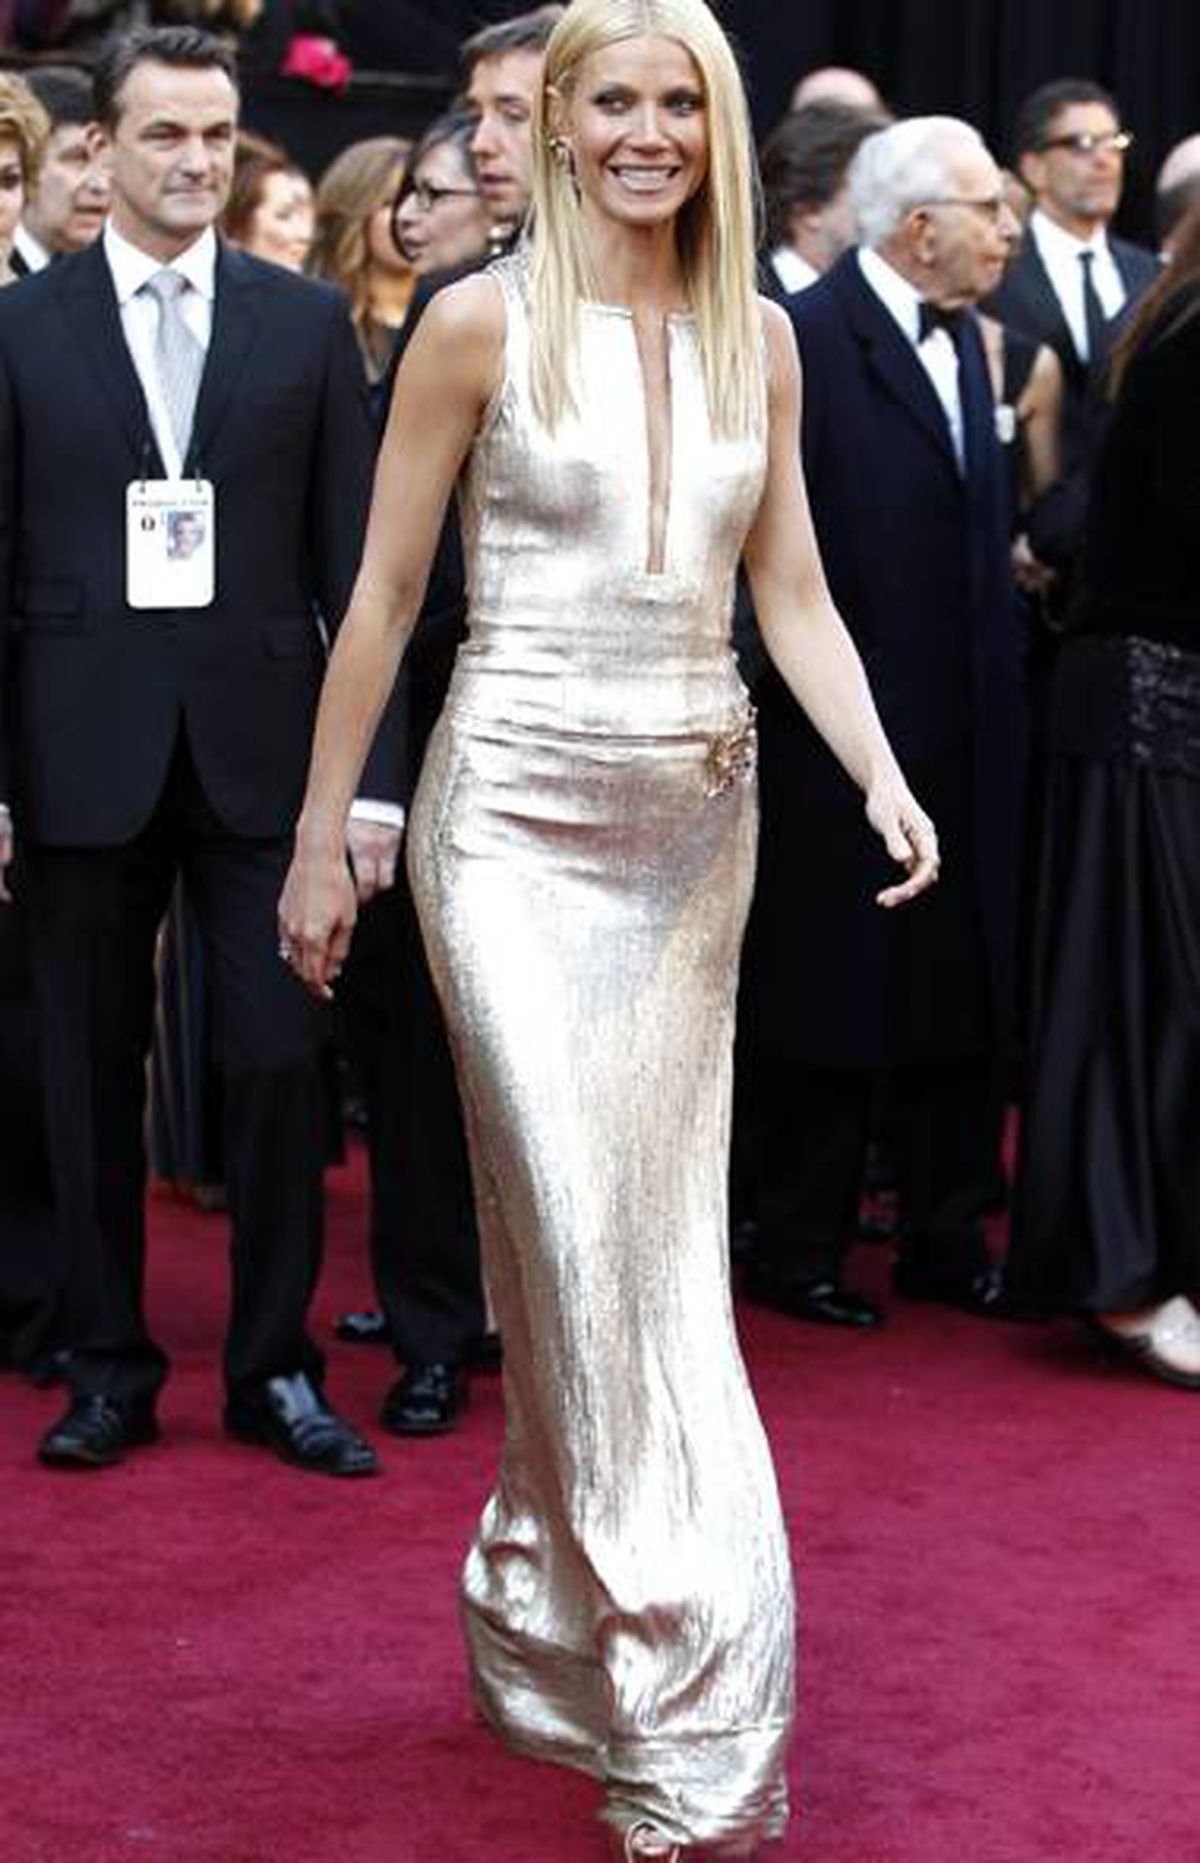 Actress Gwyneth Paltrow arrives at the 83rd Academy Awards in Hollywood, California, February 27, 2011.